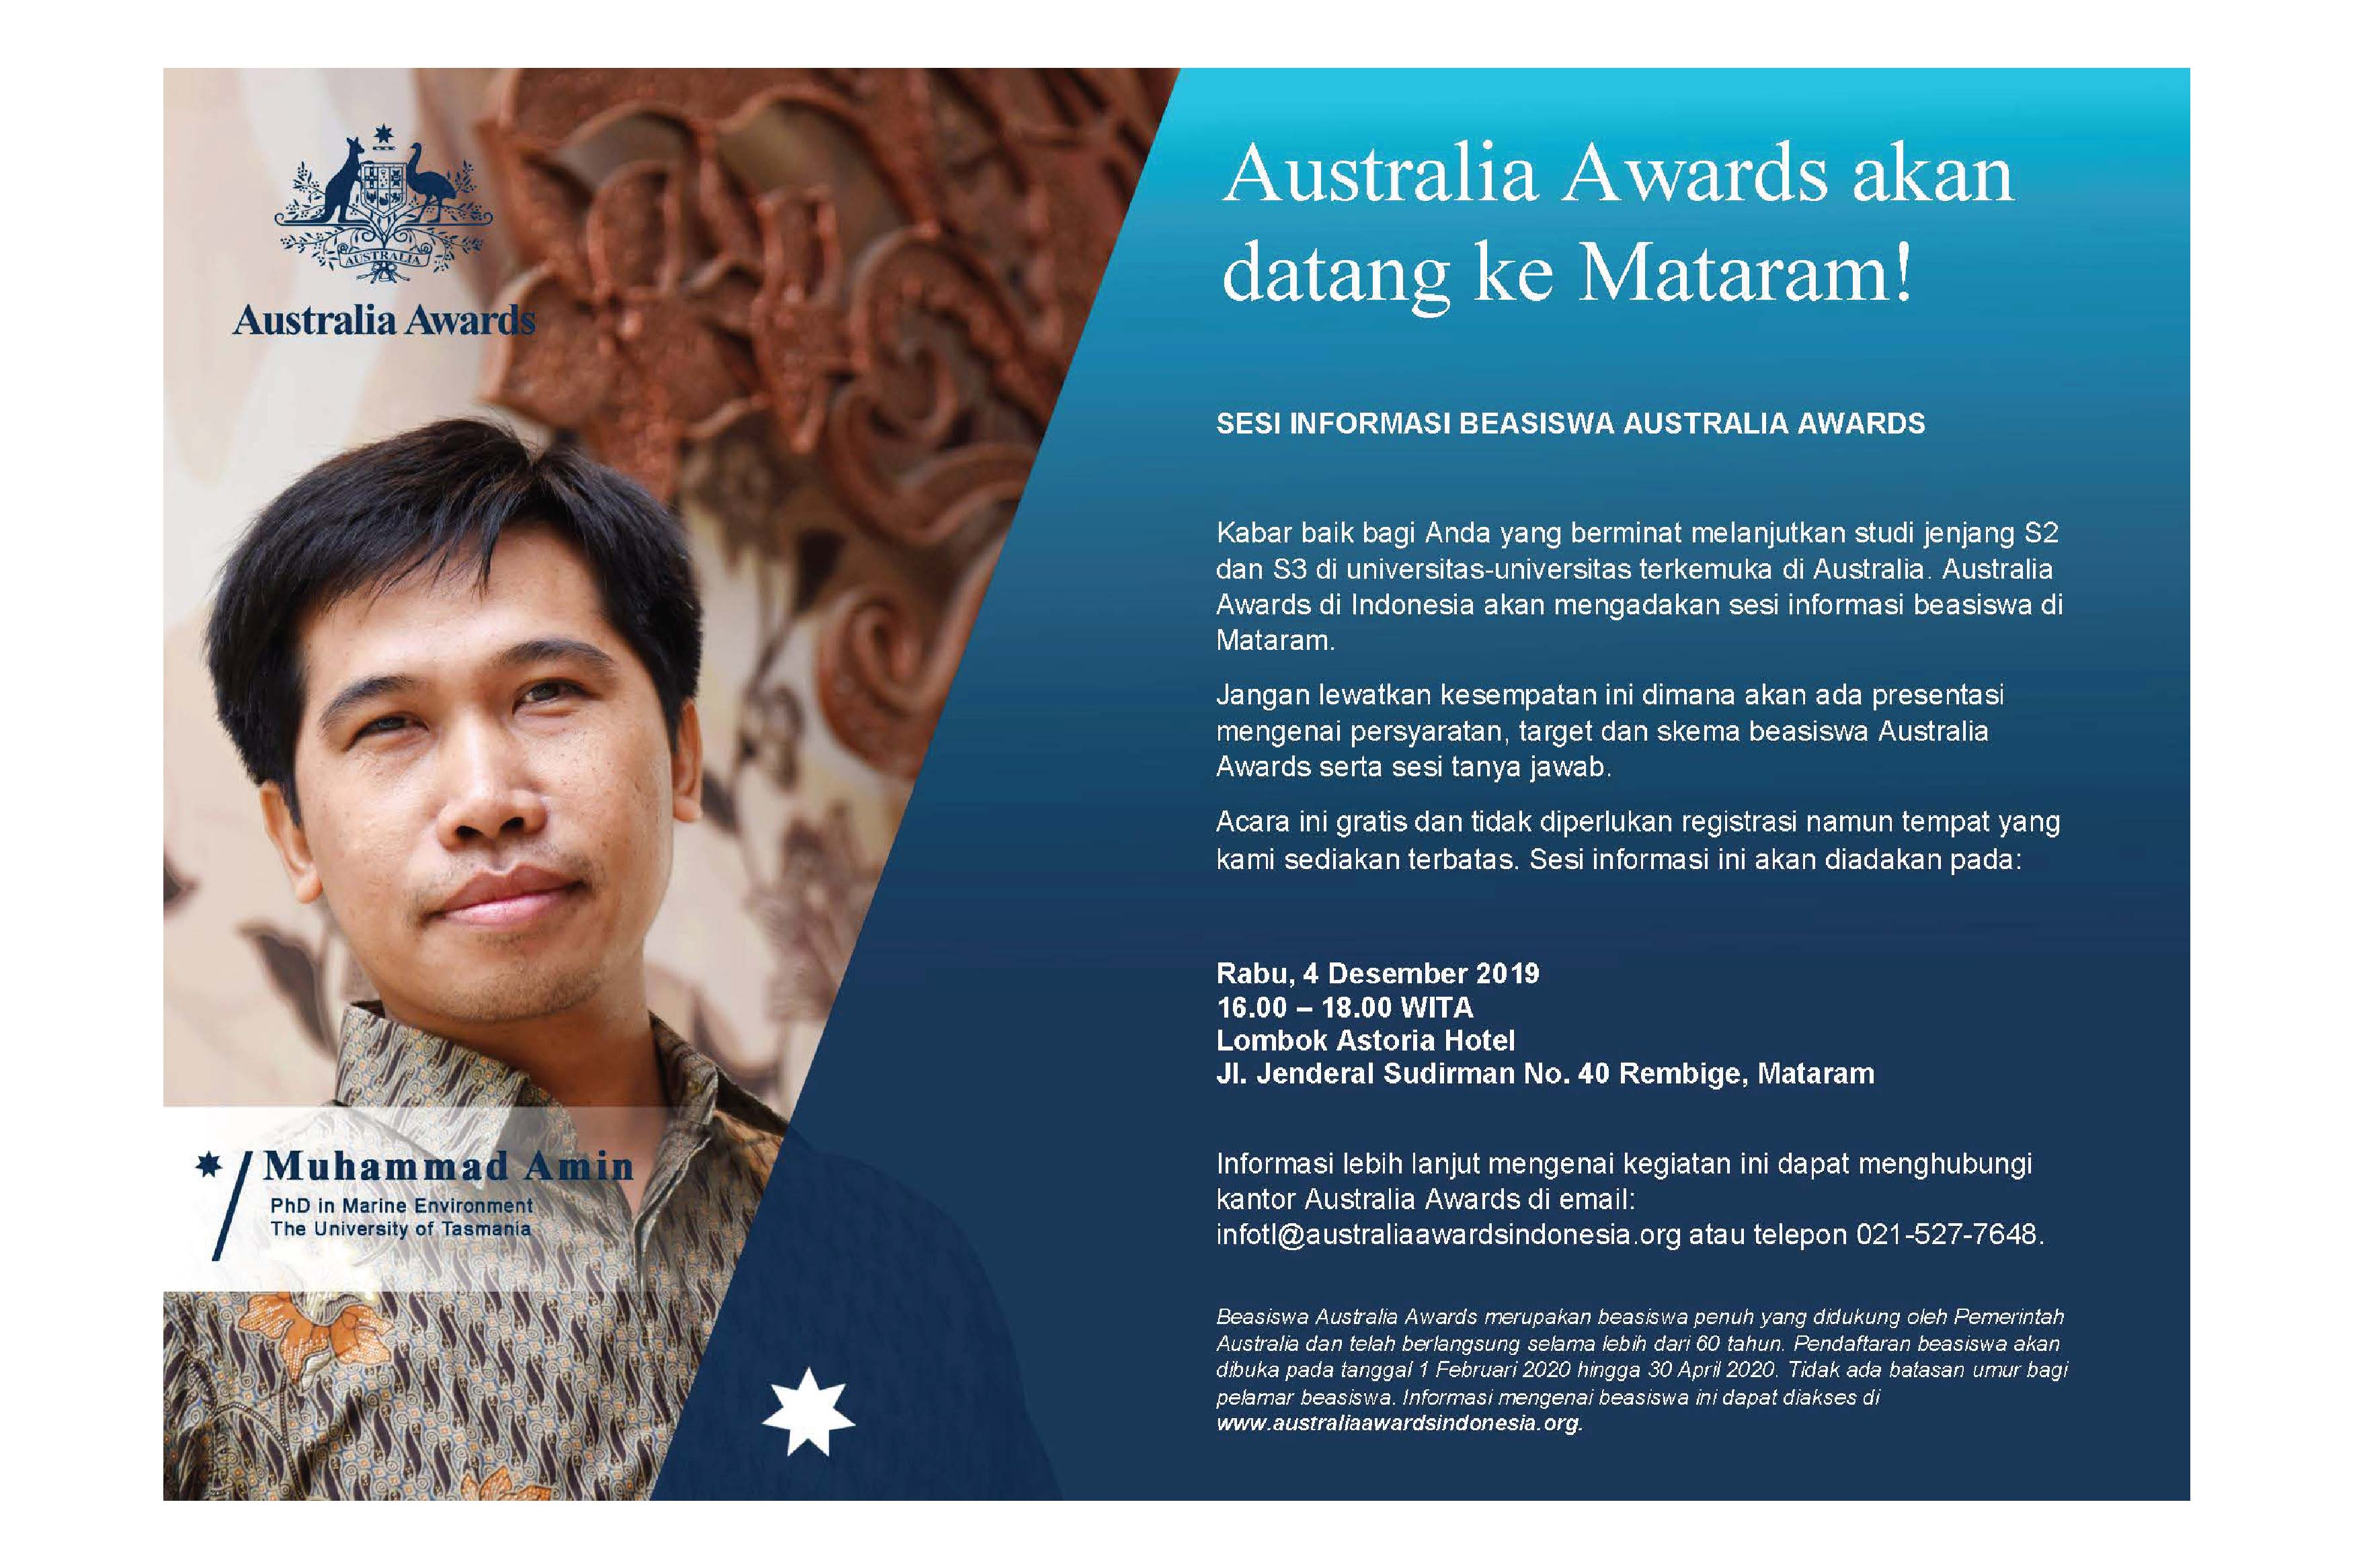 Australia Awards Postgraduate Scholarships Info Session in Mataram